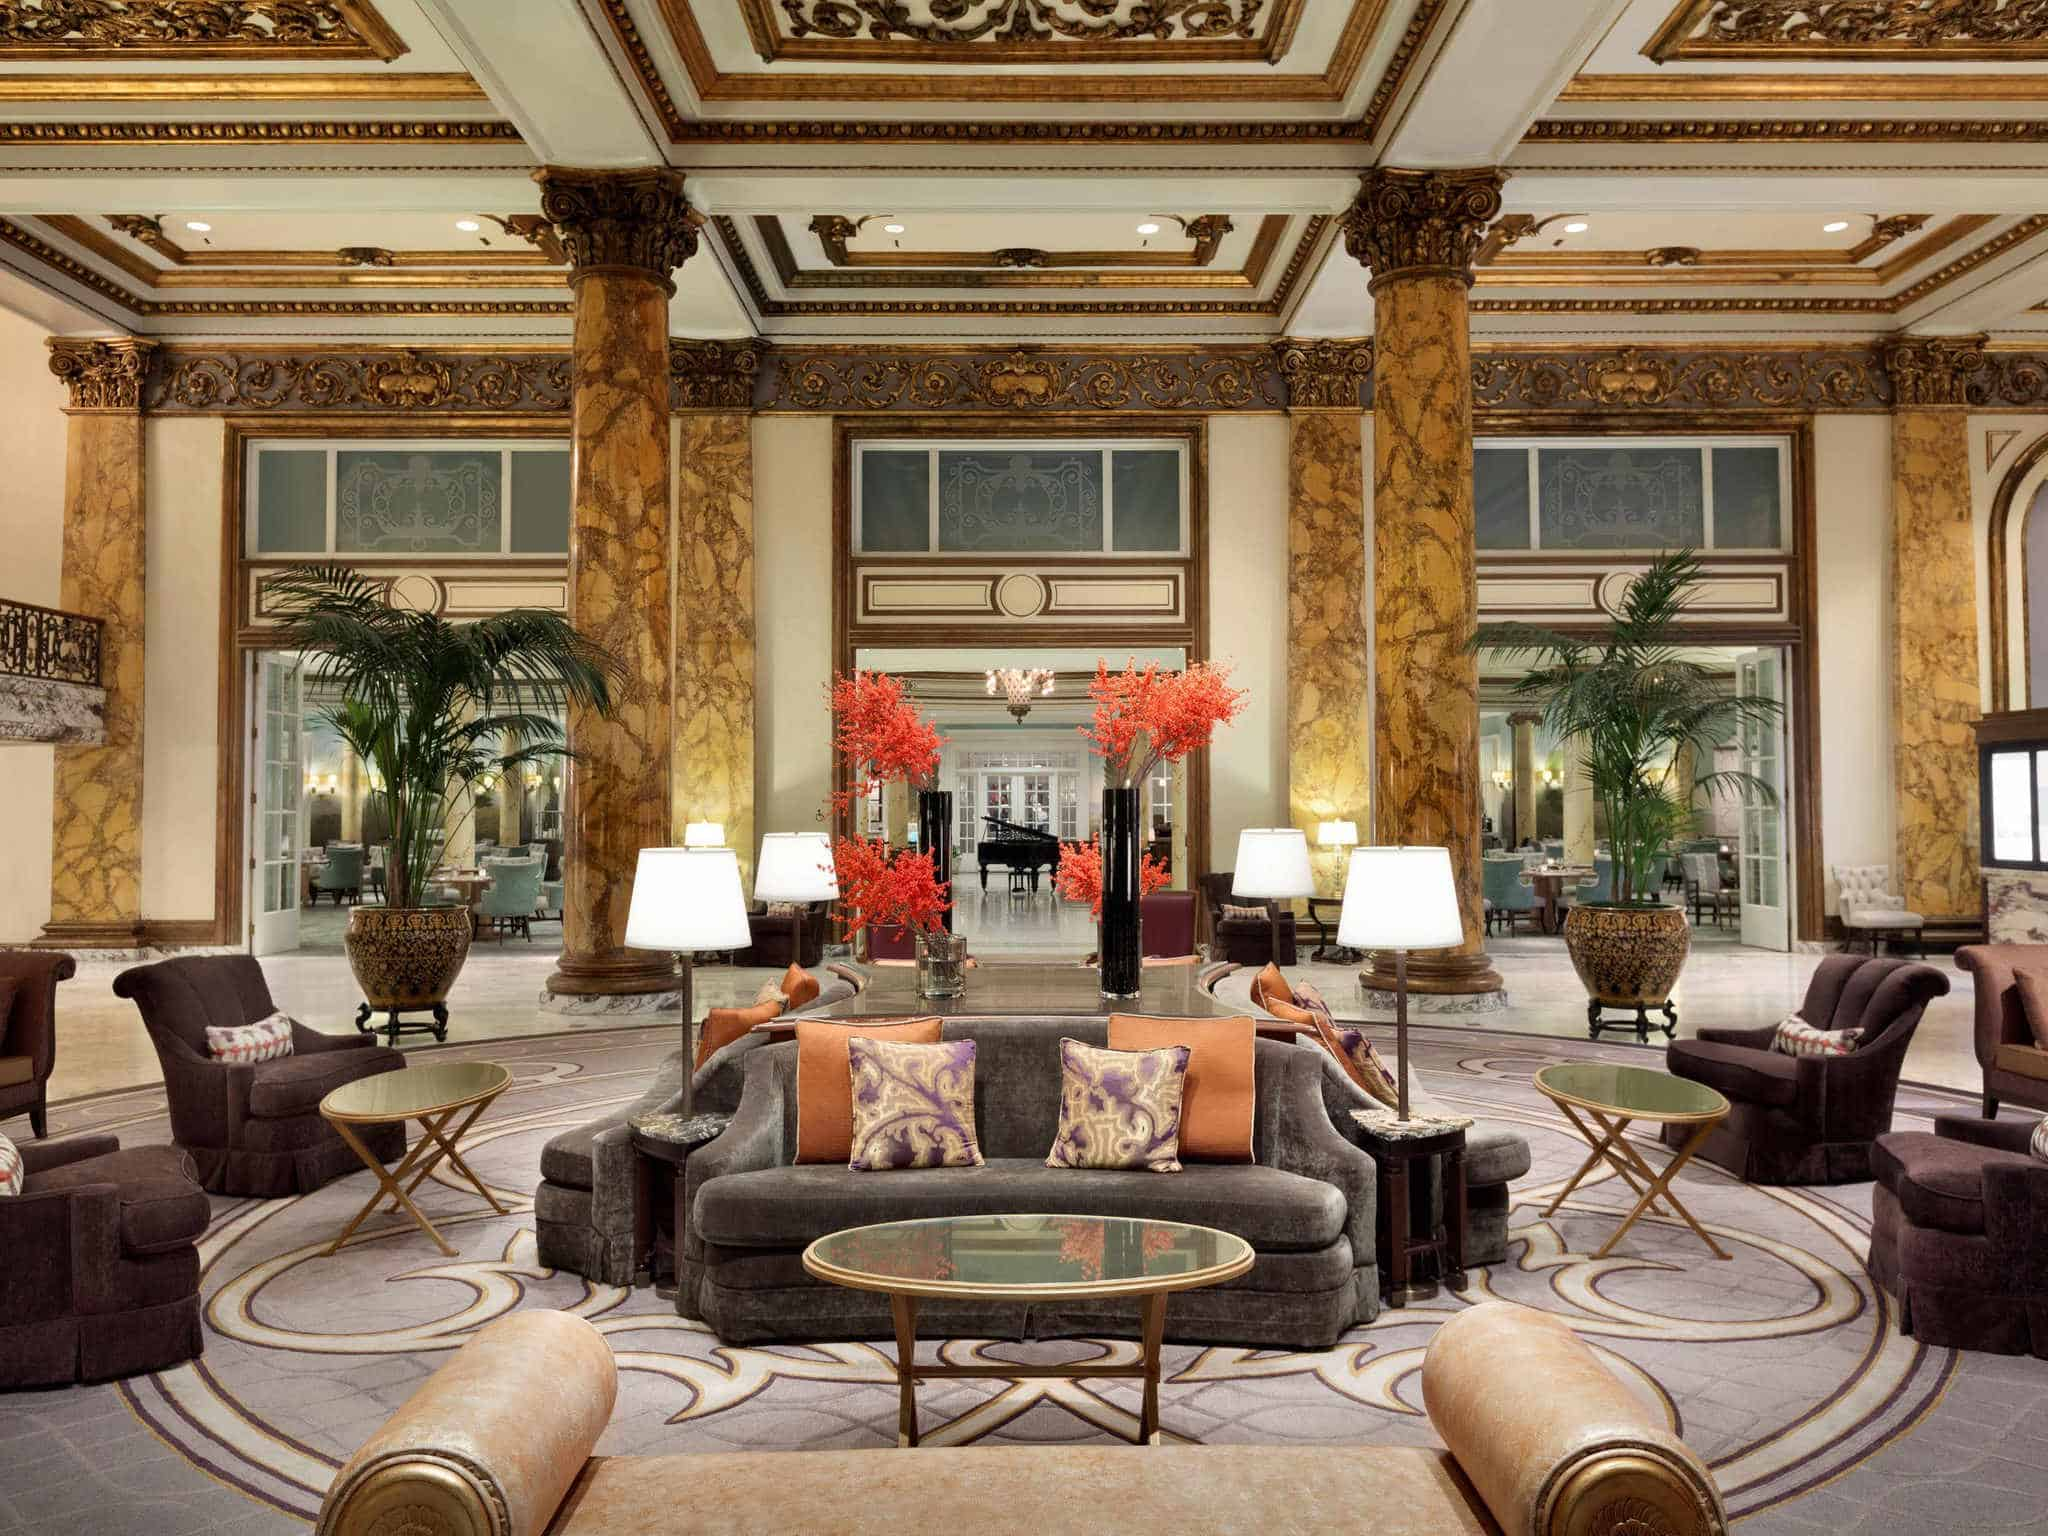 Fairmont San Francisco lobby view